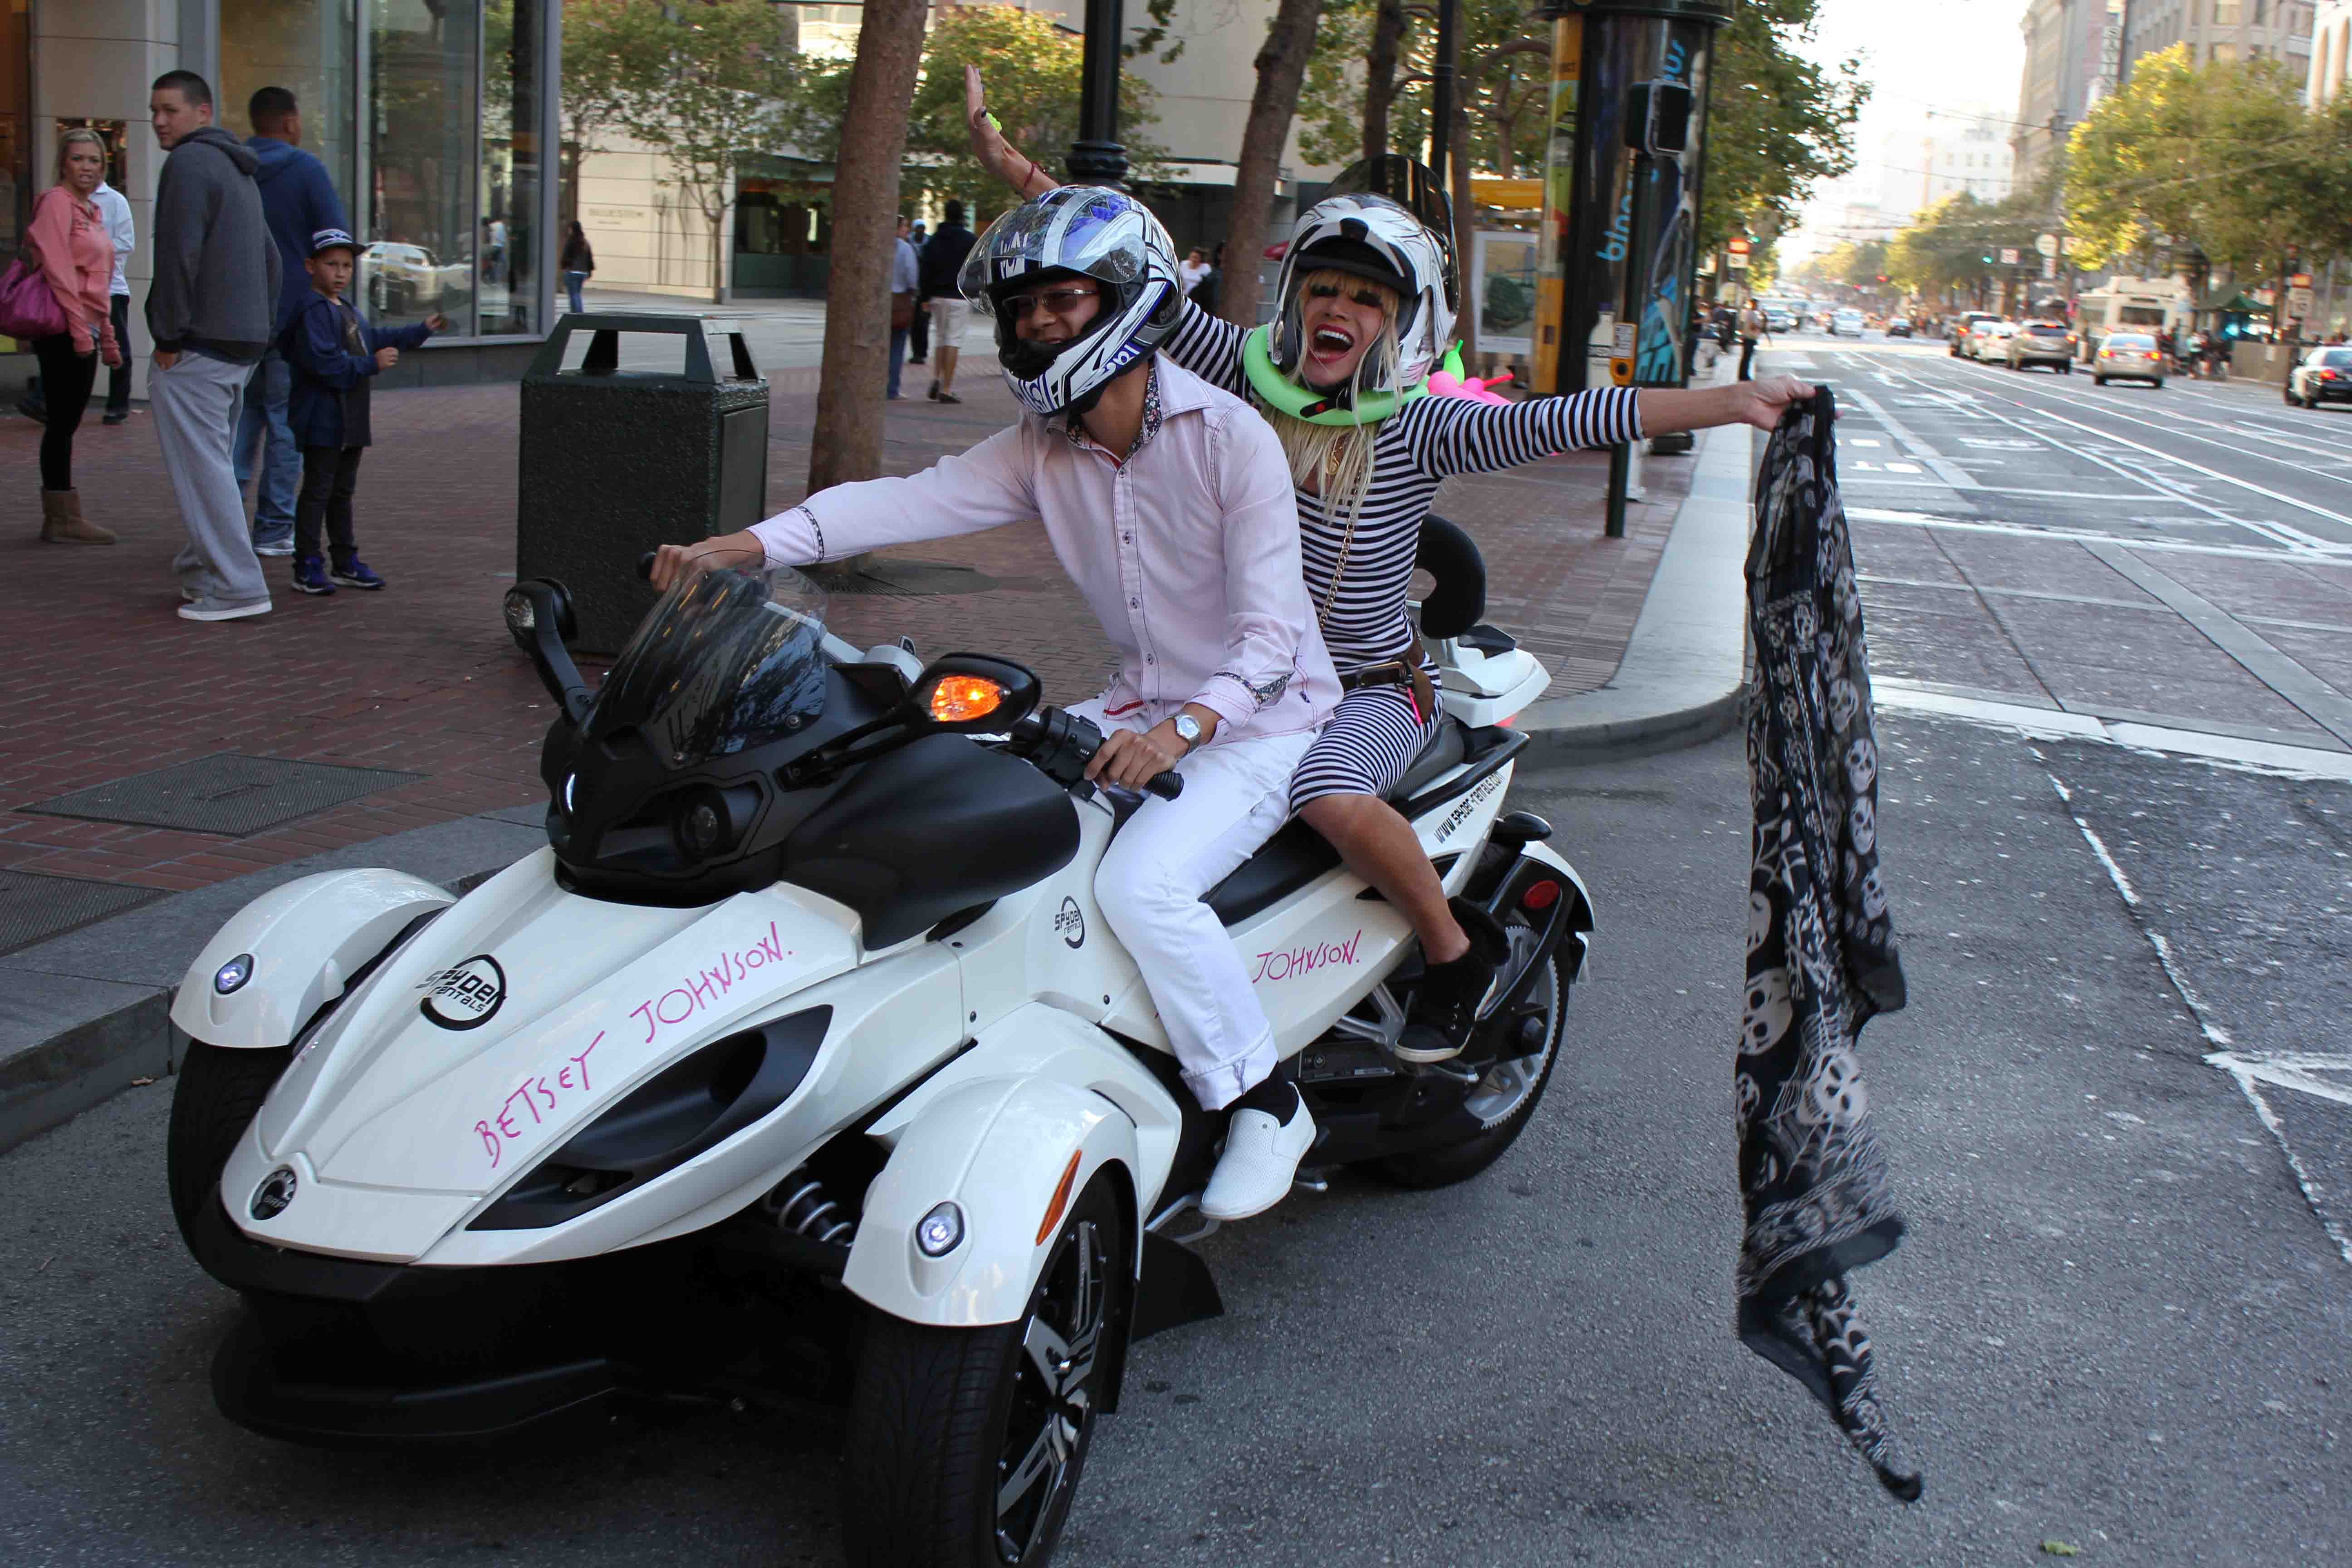 Spyder rentals com driving betsey johnson on the back of a custom can am spyderbetsey arriving at an undisclosed location on a can am spyder provided by